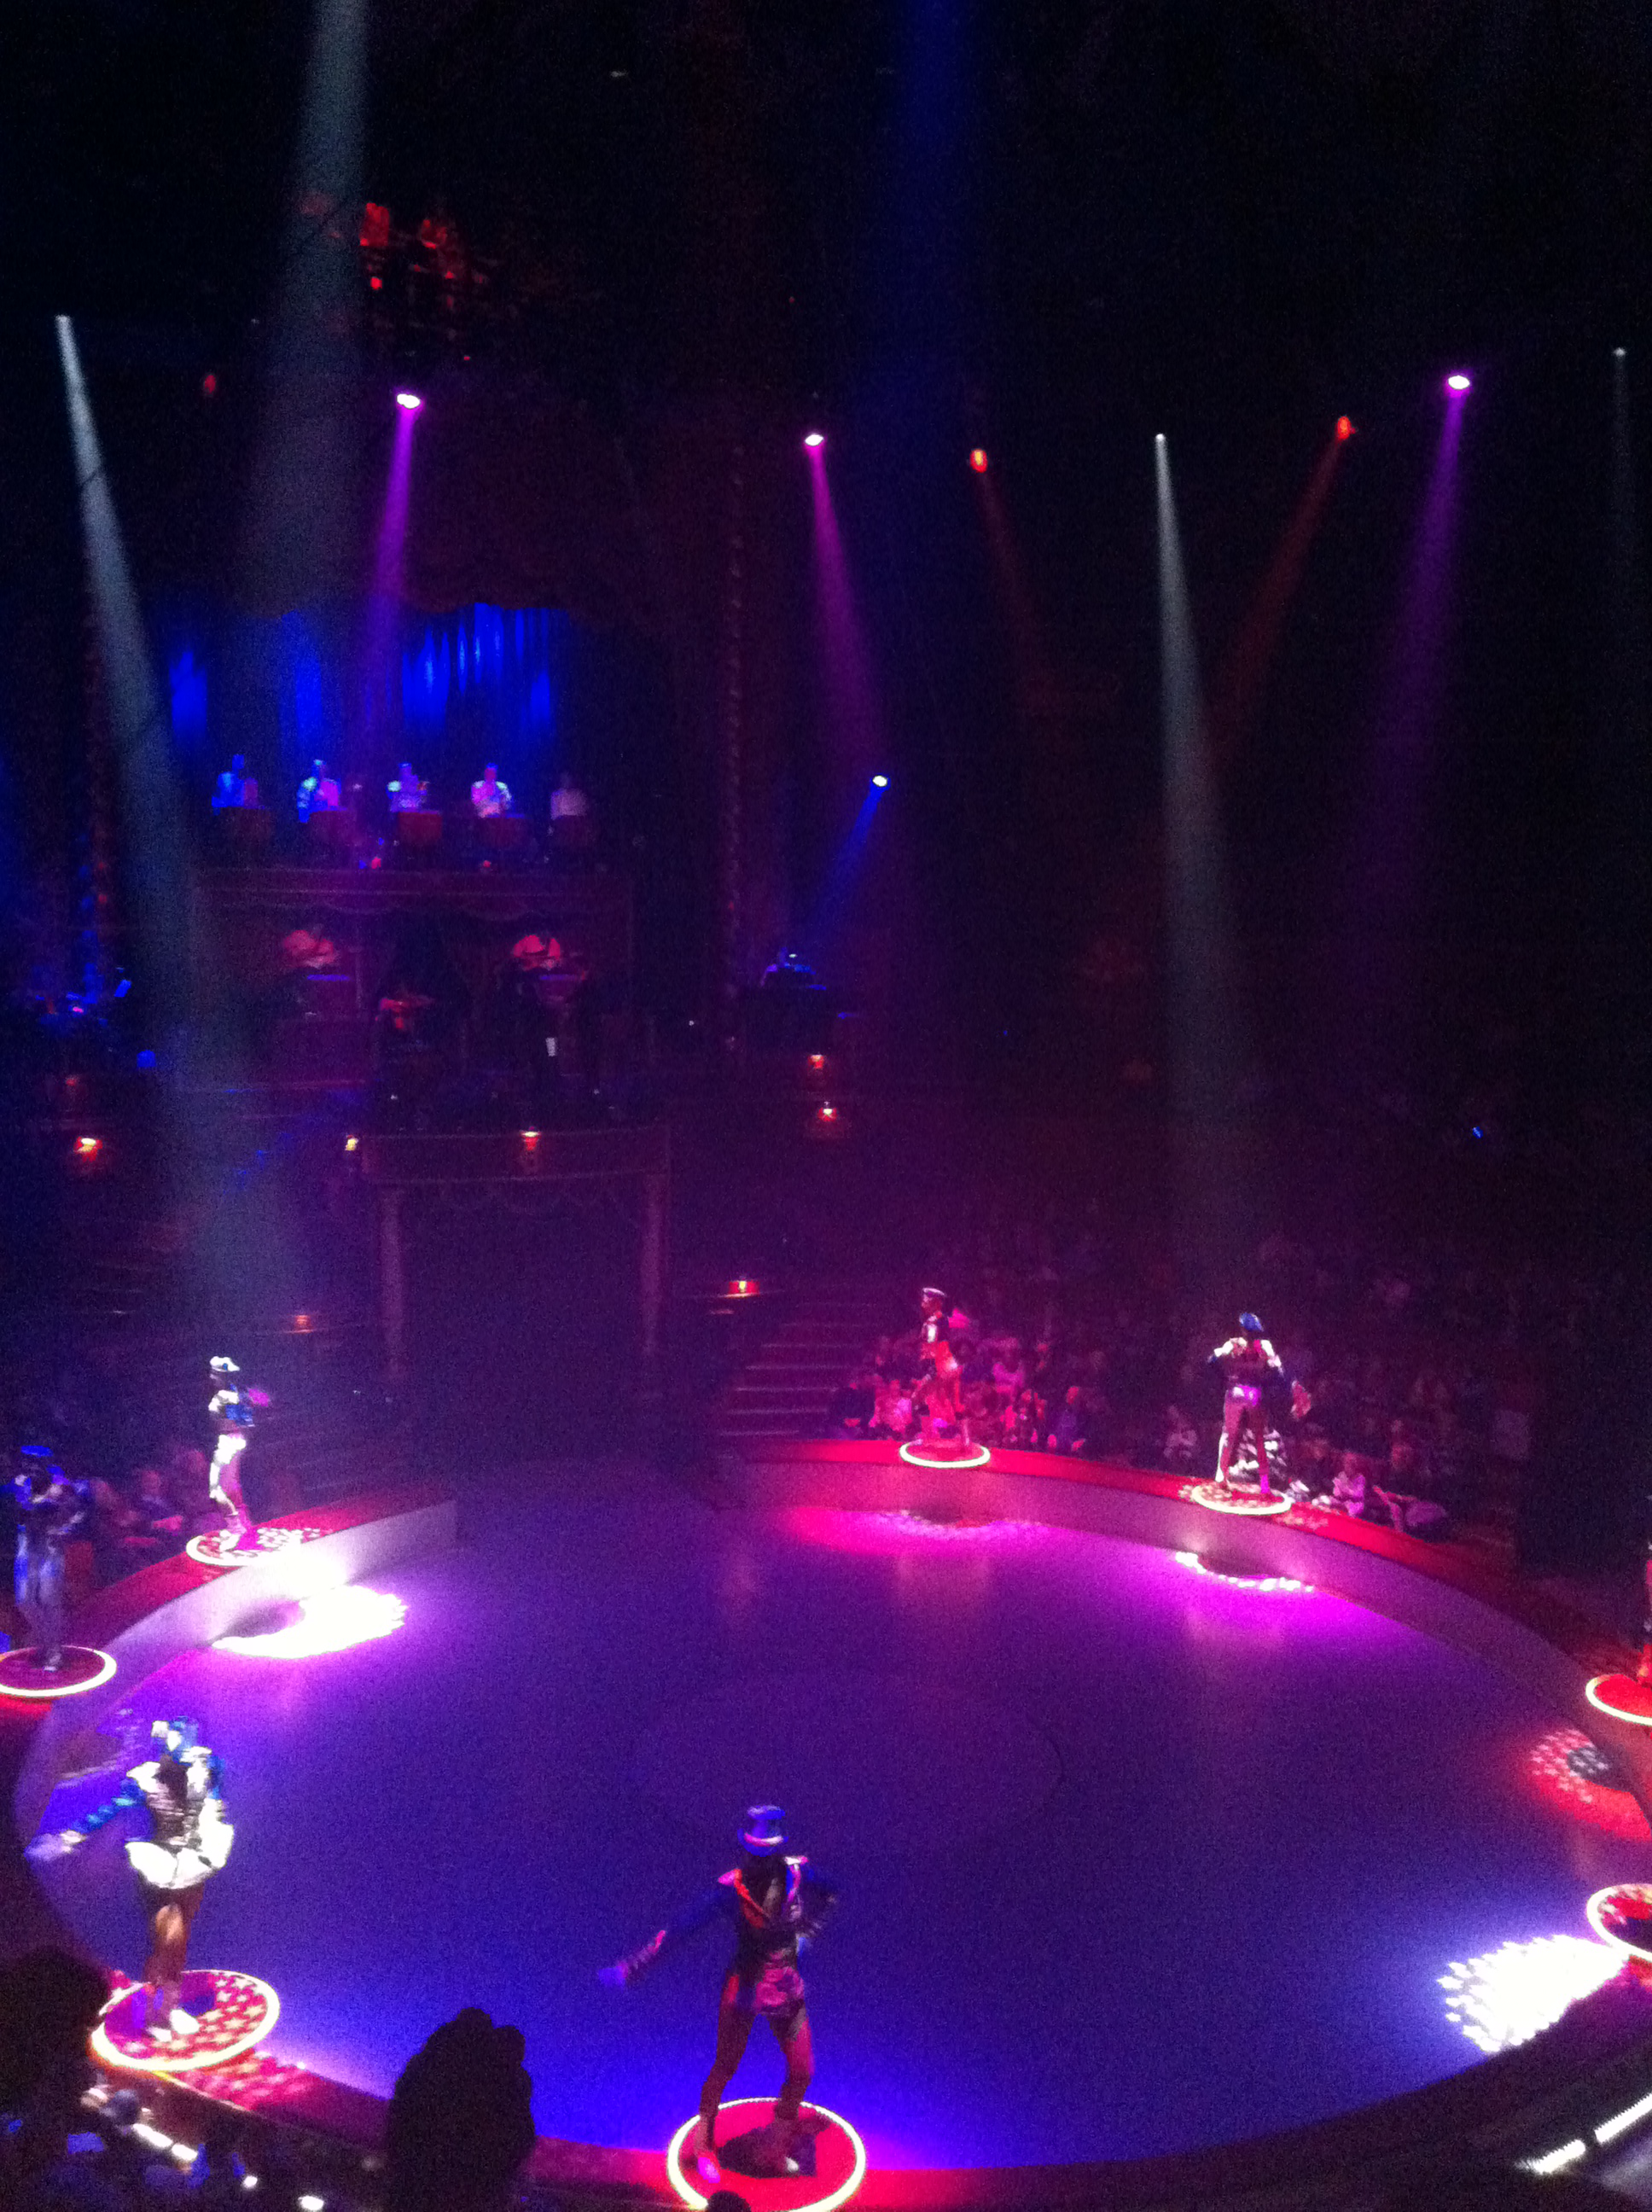 paris sightseeing : winter circus